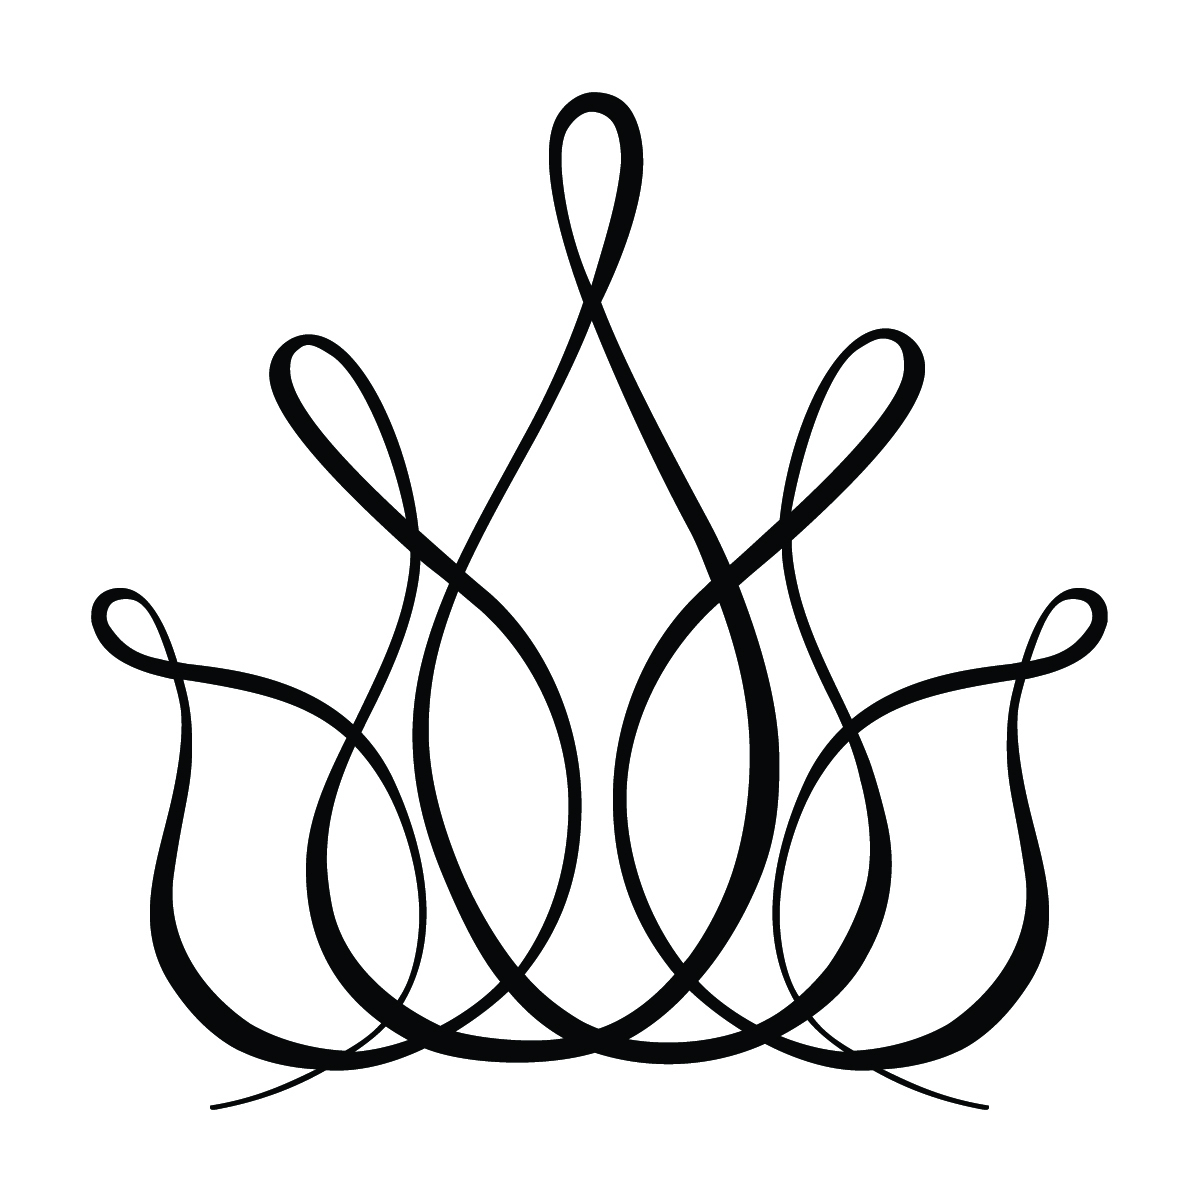 Queen Crown Outline Clipart Pc56babcb